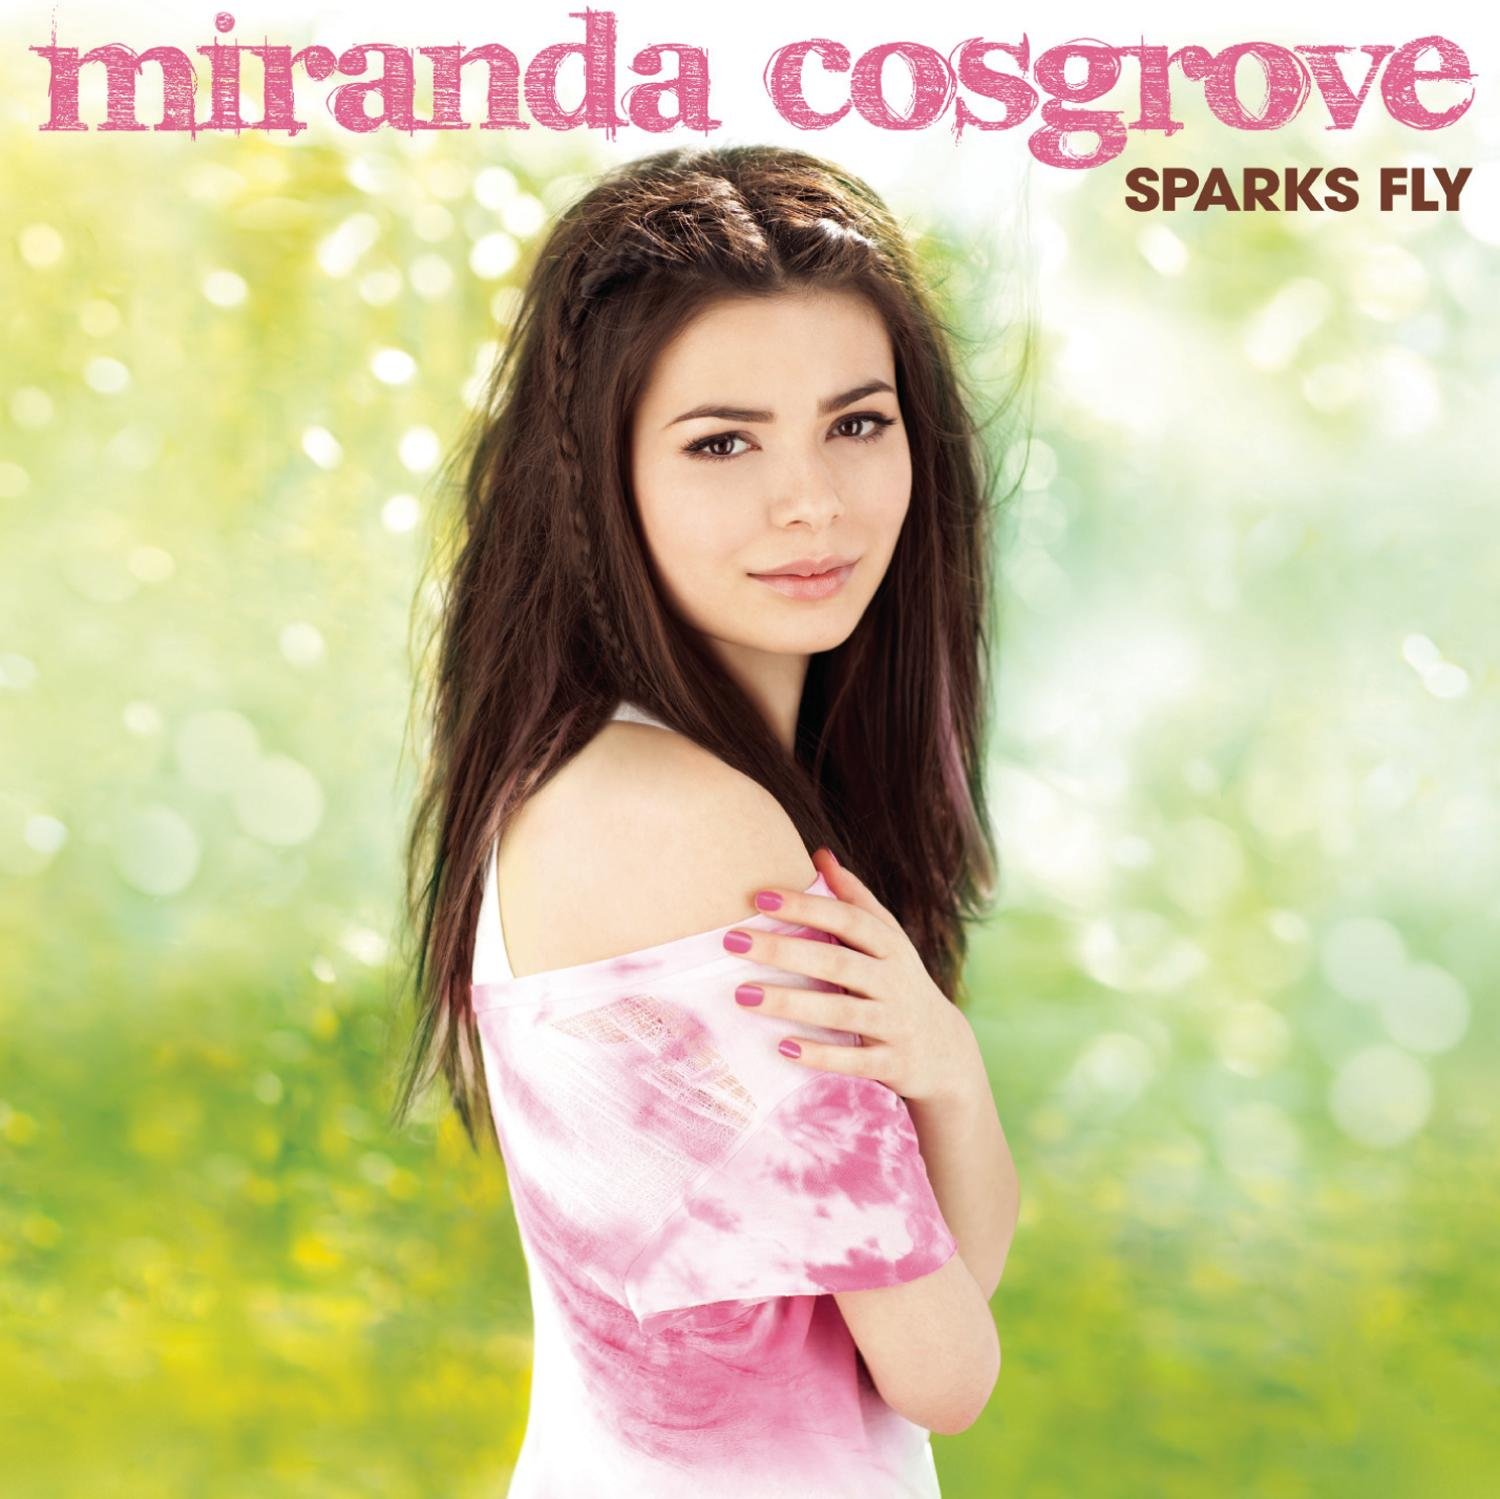 Miranda Cosgrove Sparks Fly Amazon Music